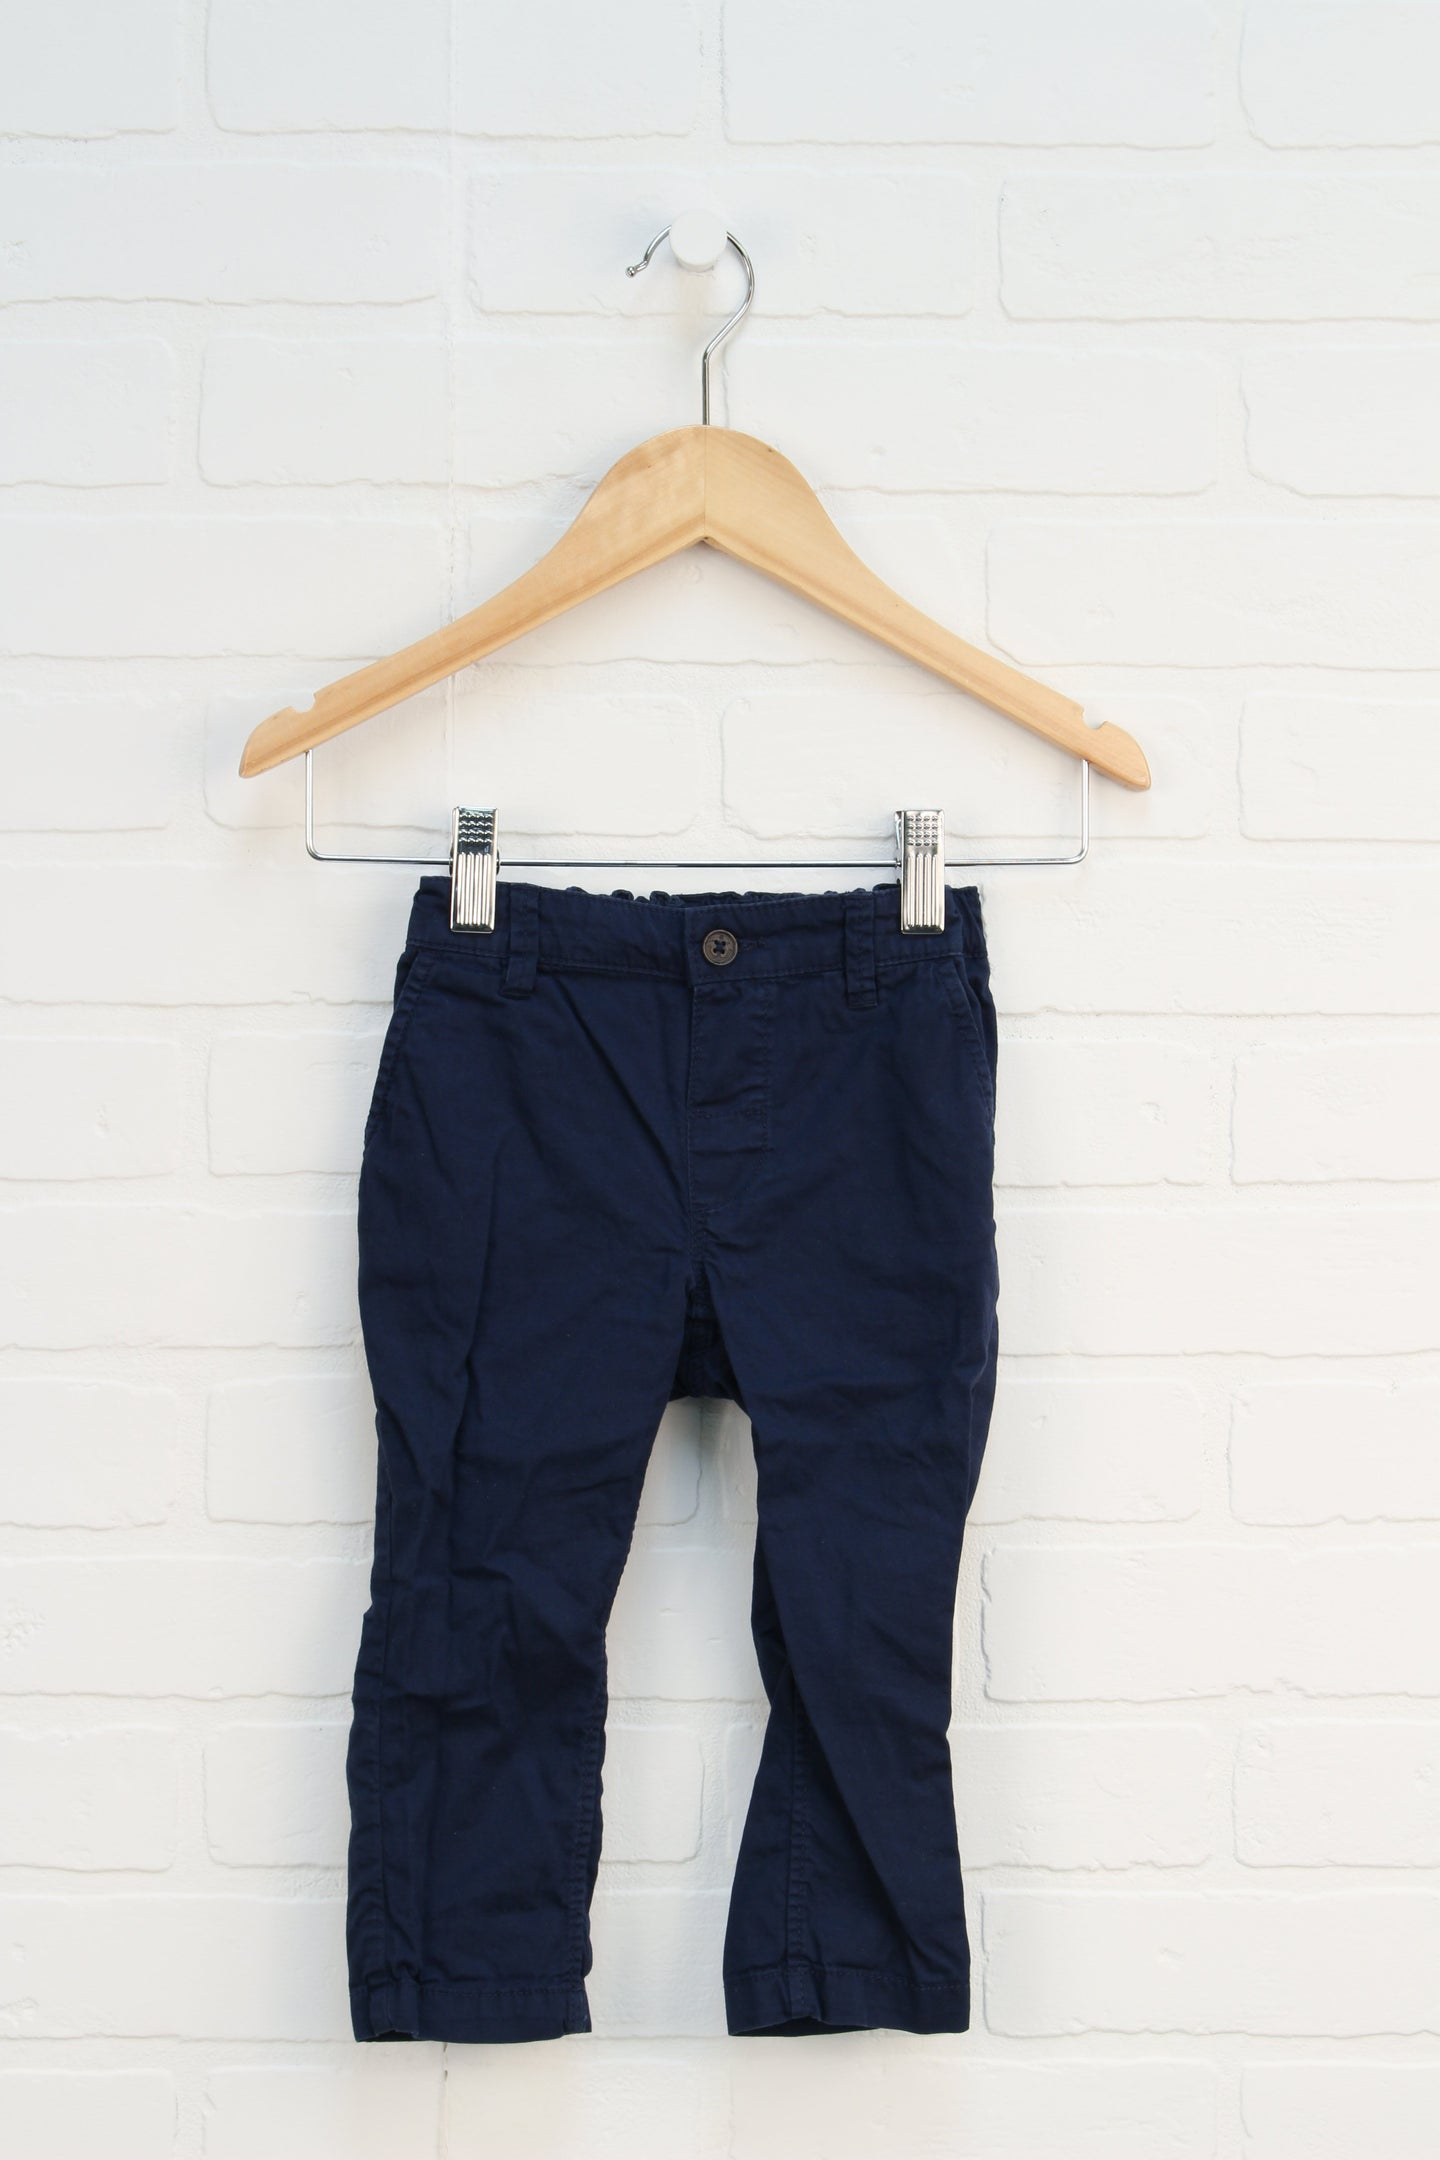 Navy Trousers (Size 12-18M)